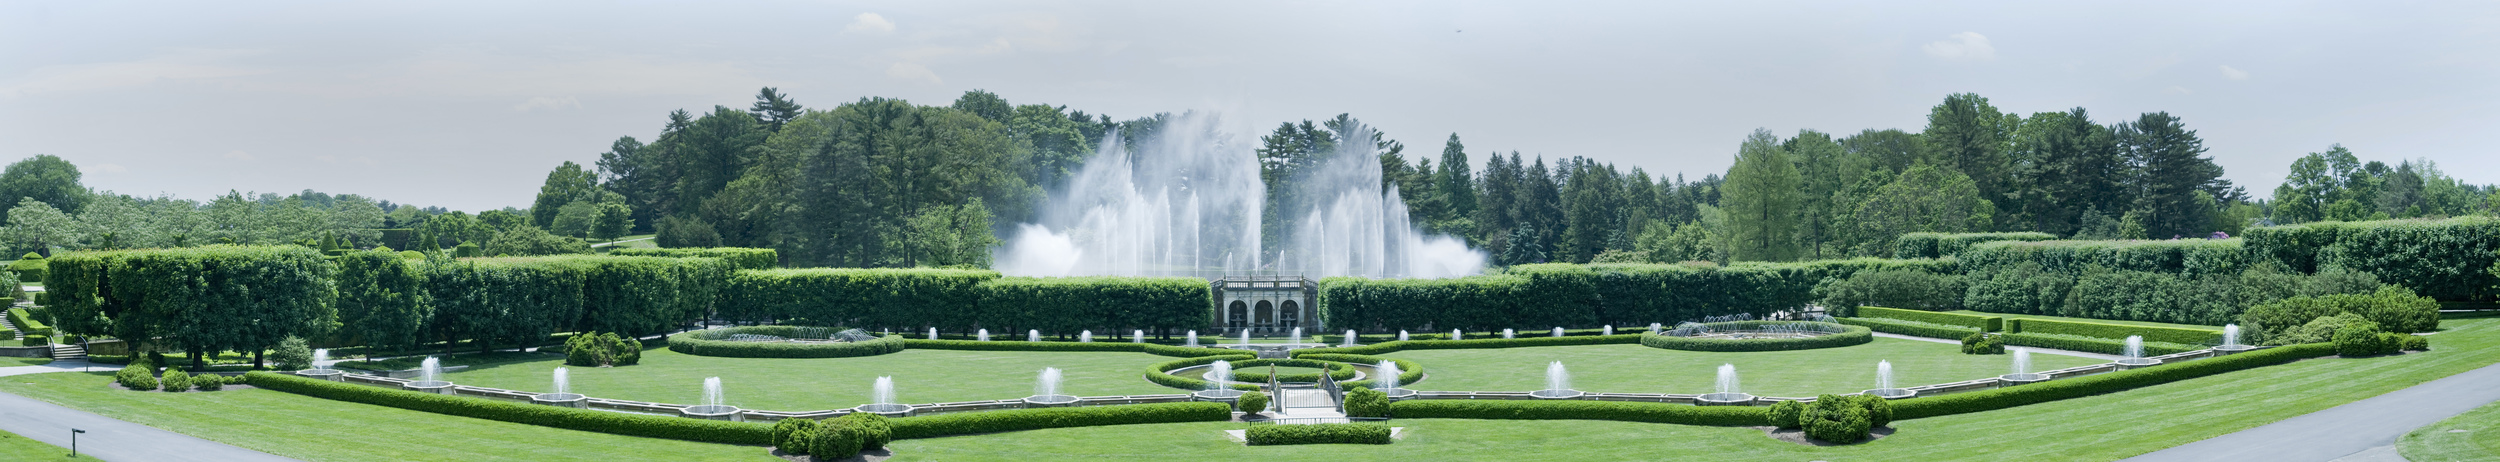 Longwood fountains